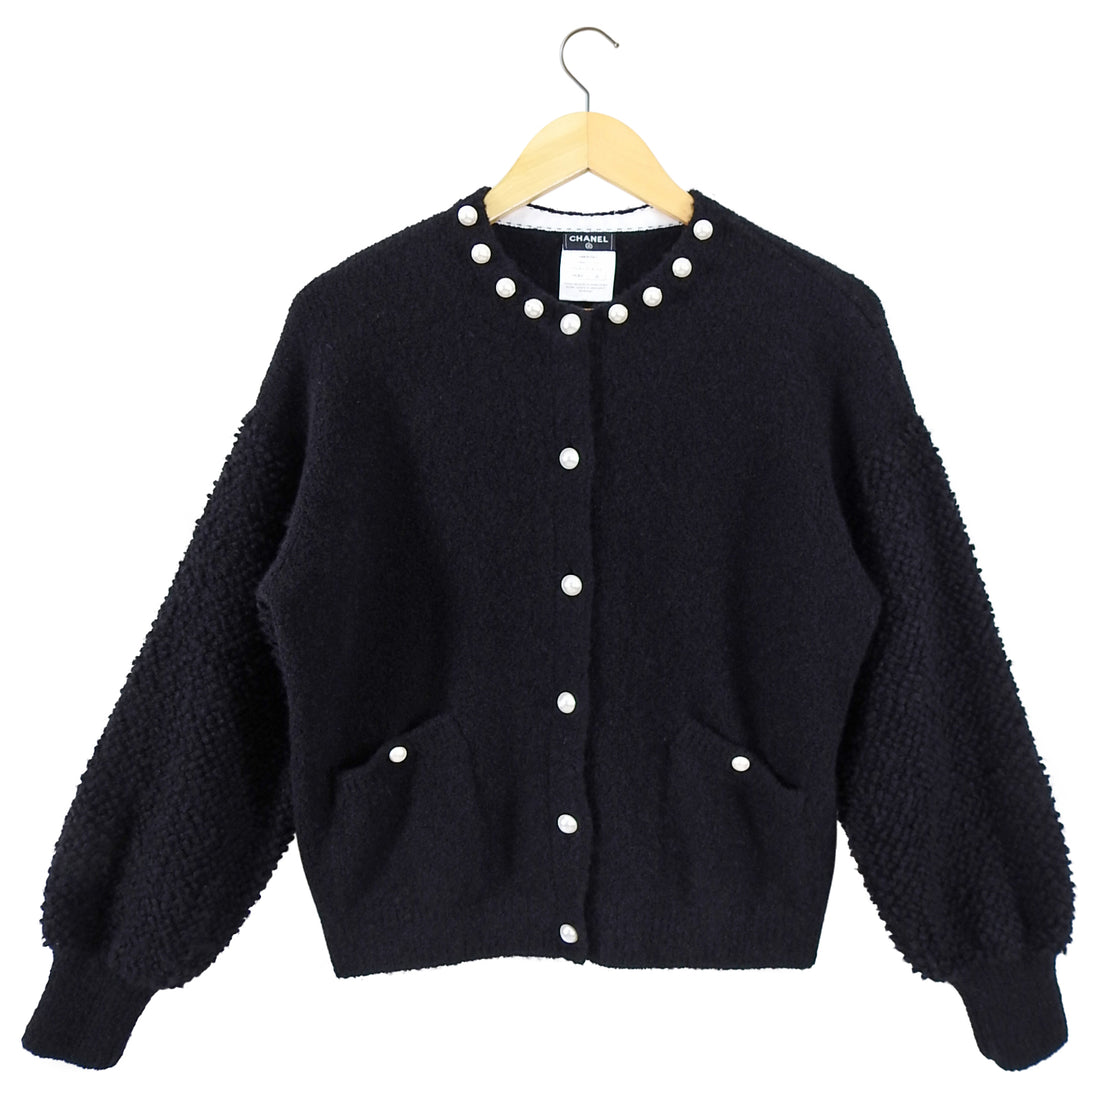 Chanel Black Cashmere Cardigan Sweater with Pearl Buttons - FR38 / USA 6